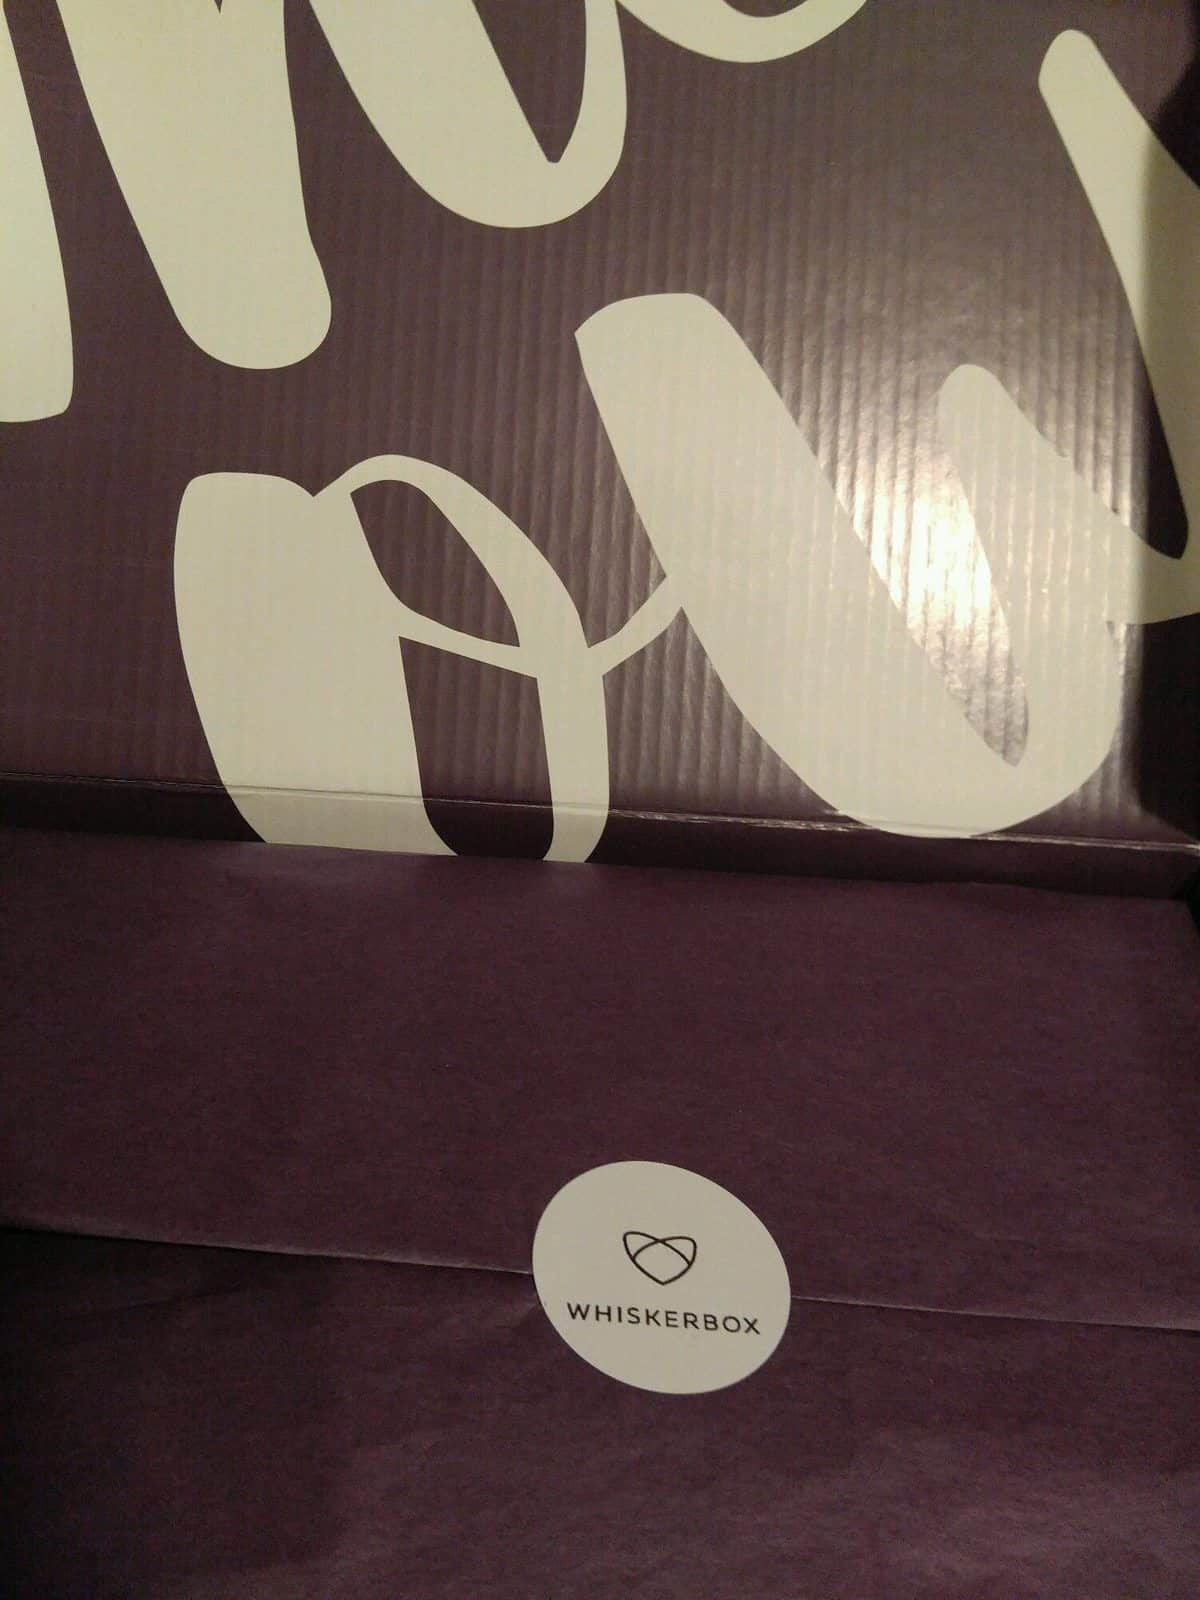 WhiskerBox October 2016 Box Review - Box